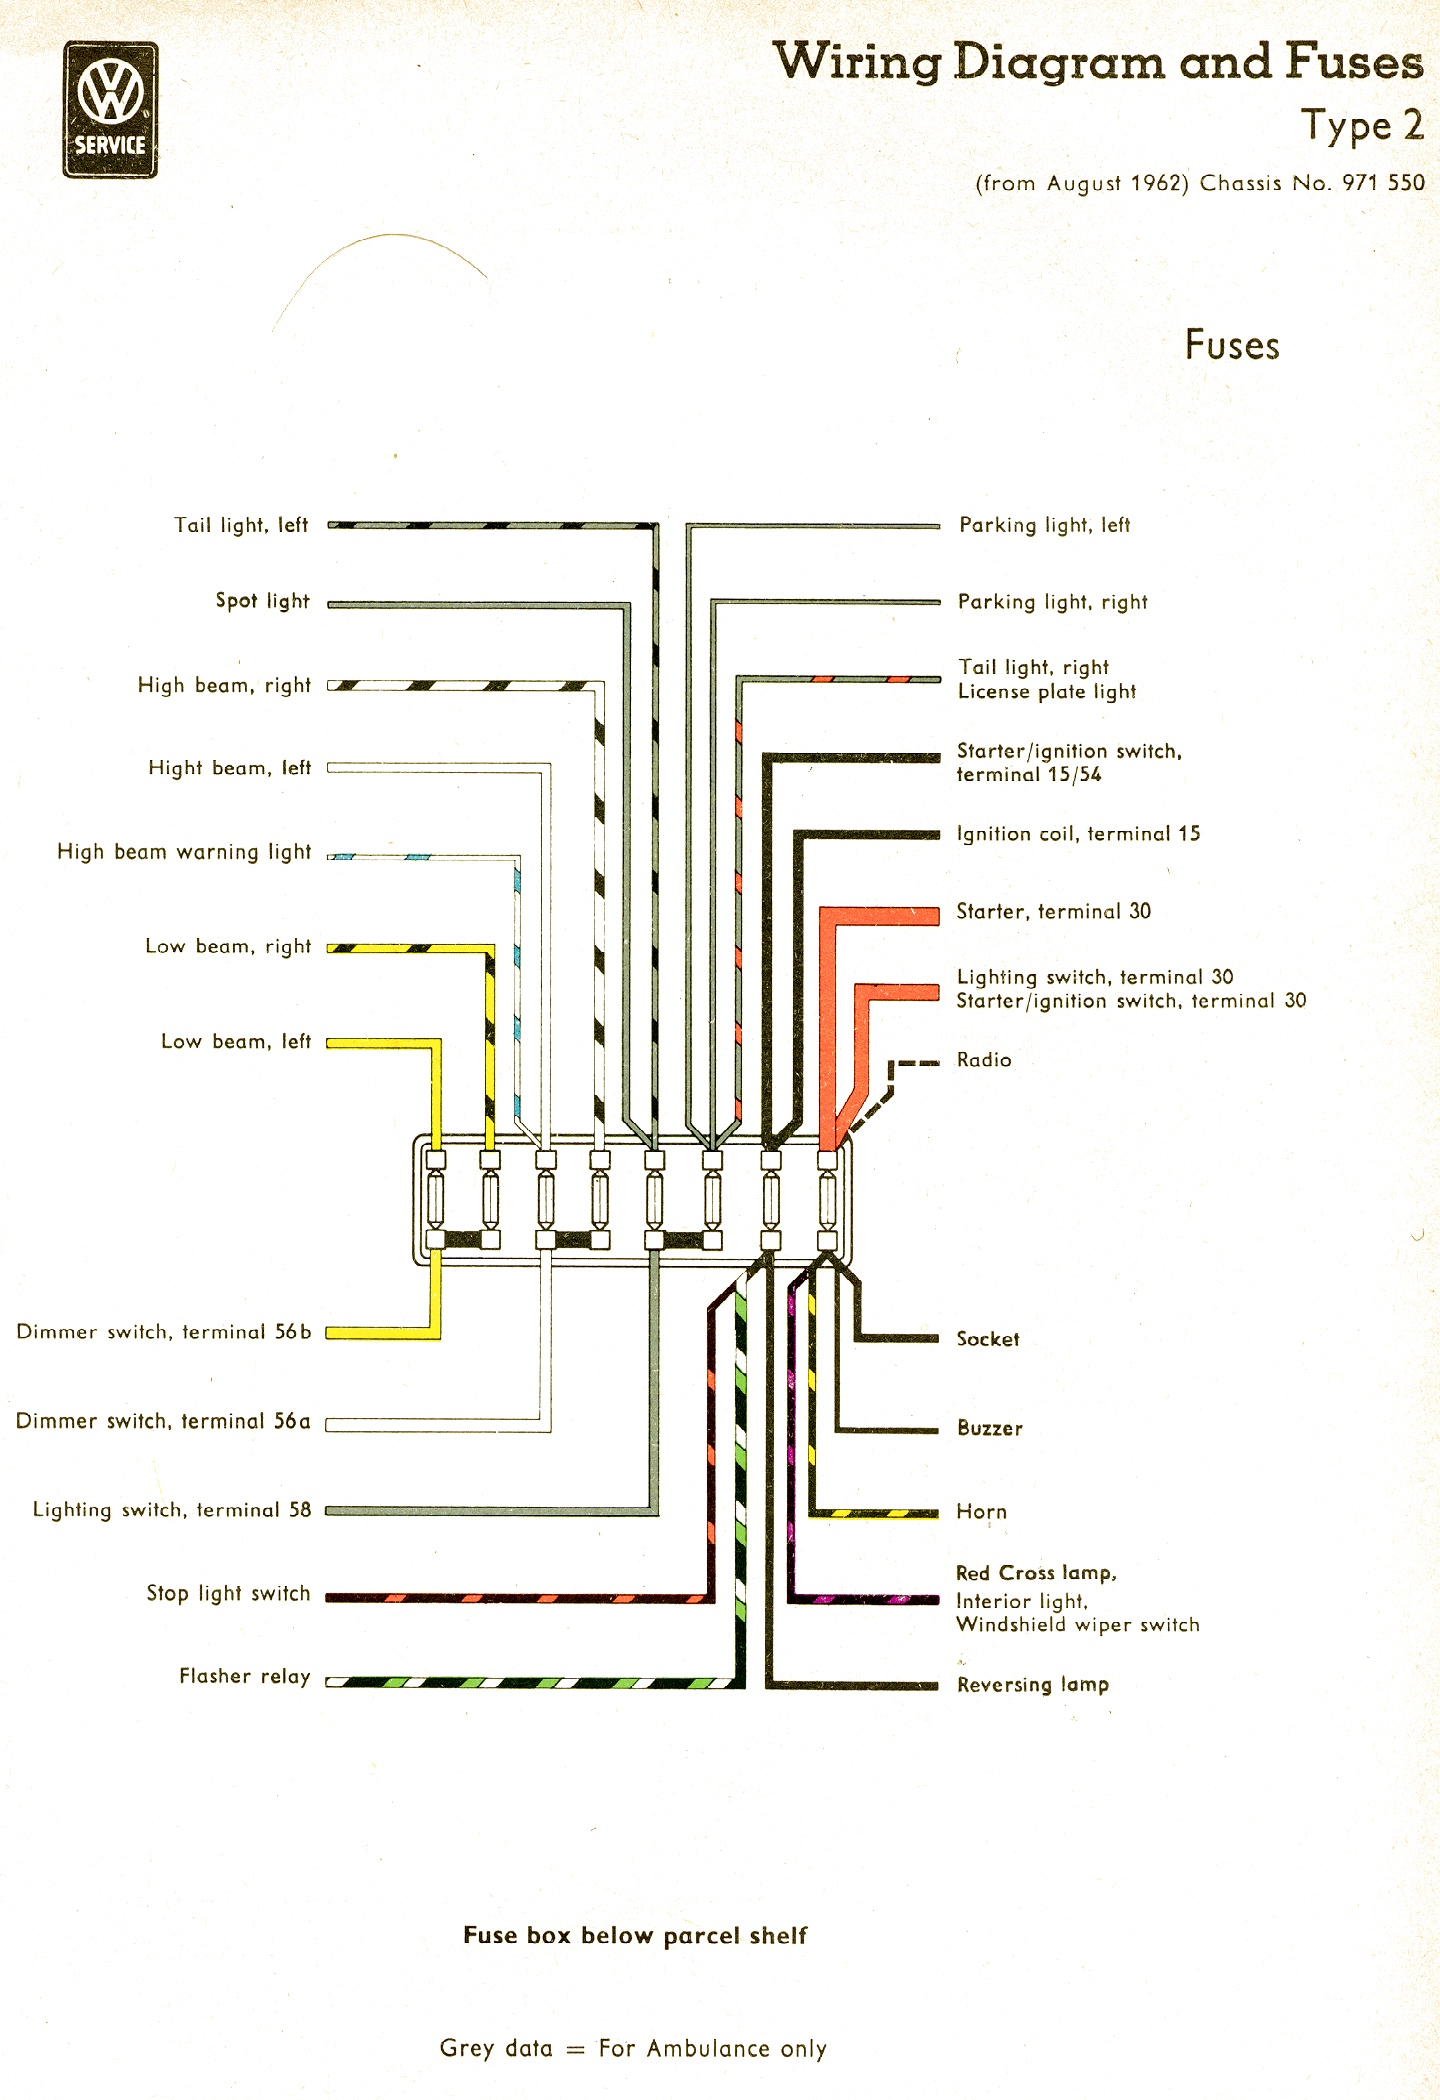 1972 C10 Wiring Diagram 250 Hp Library Camaro Fuse Box Furthermore 75 Nova Steering Column Com Vw Bus And Other Diagrams